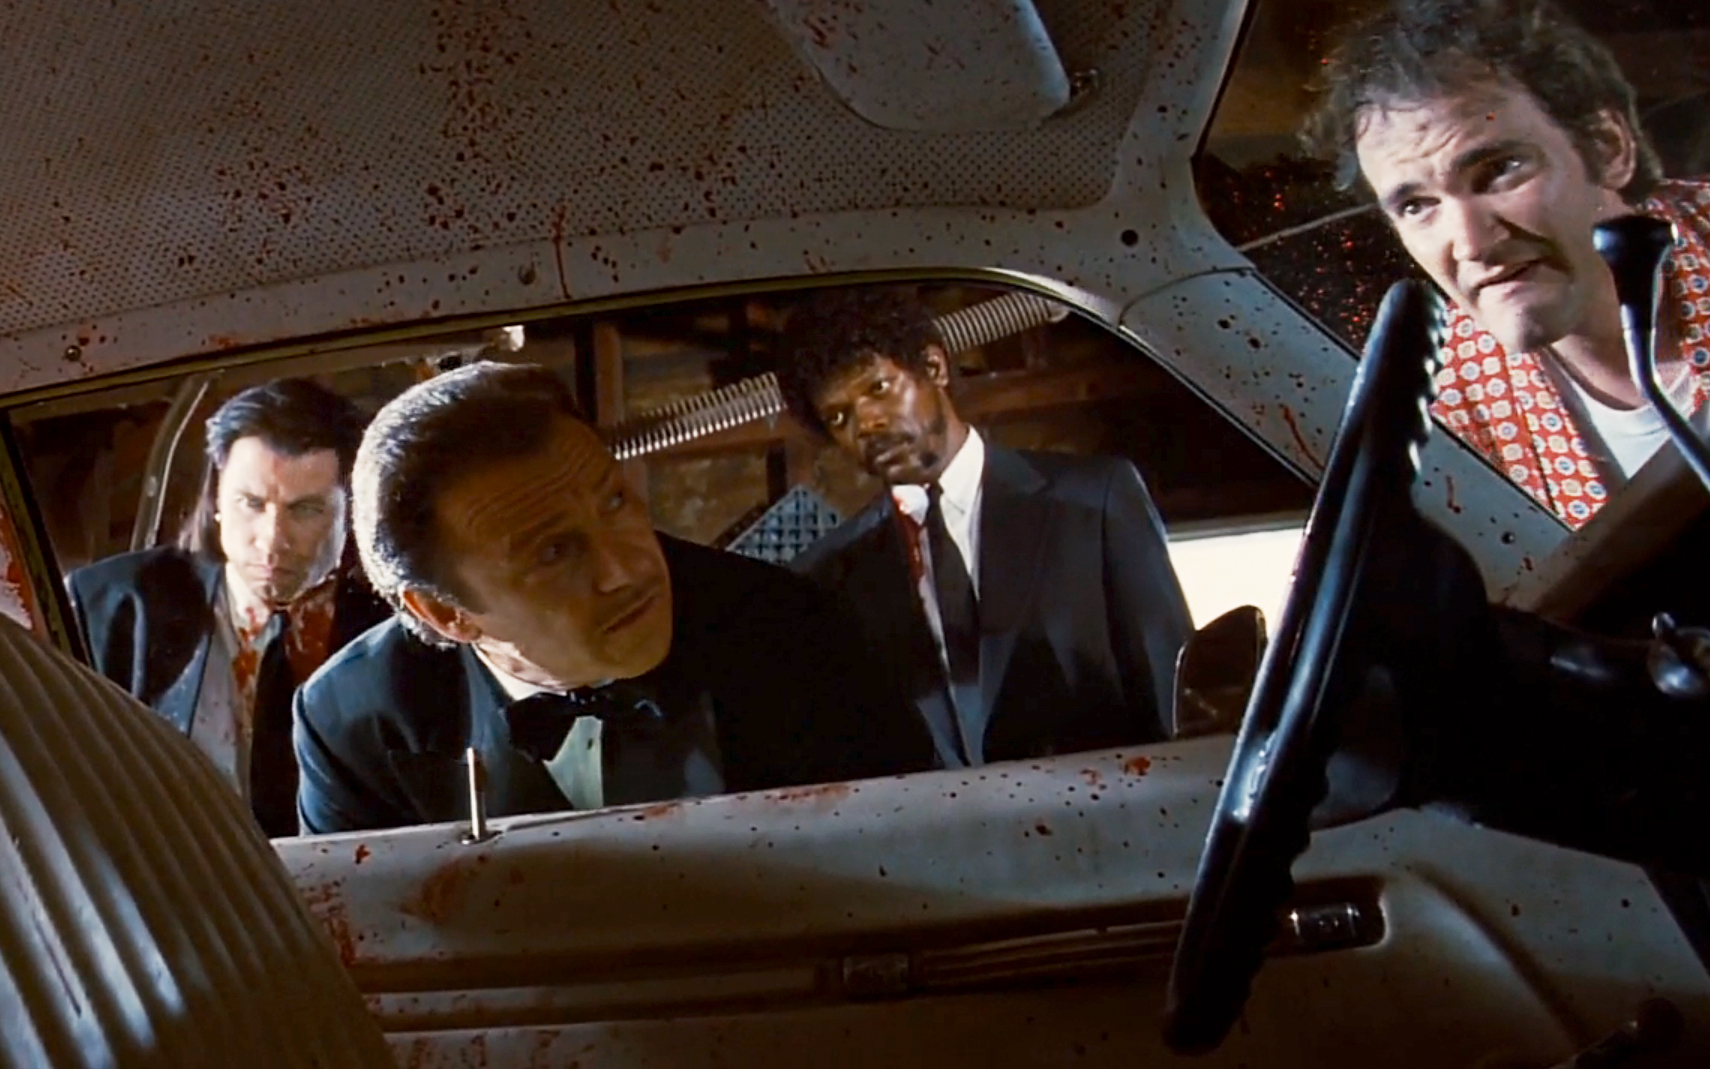 an analysis of a culture of violence in the film pulp fiction by quentin tarantino Quentin tarantino's pulp fiction is pretty close to the definition of its title, if only the american heritage dictionary had admitted rough, unfinished film as well as paper it is certainly.